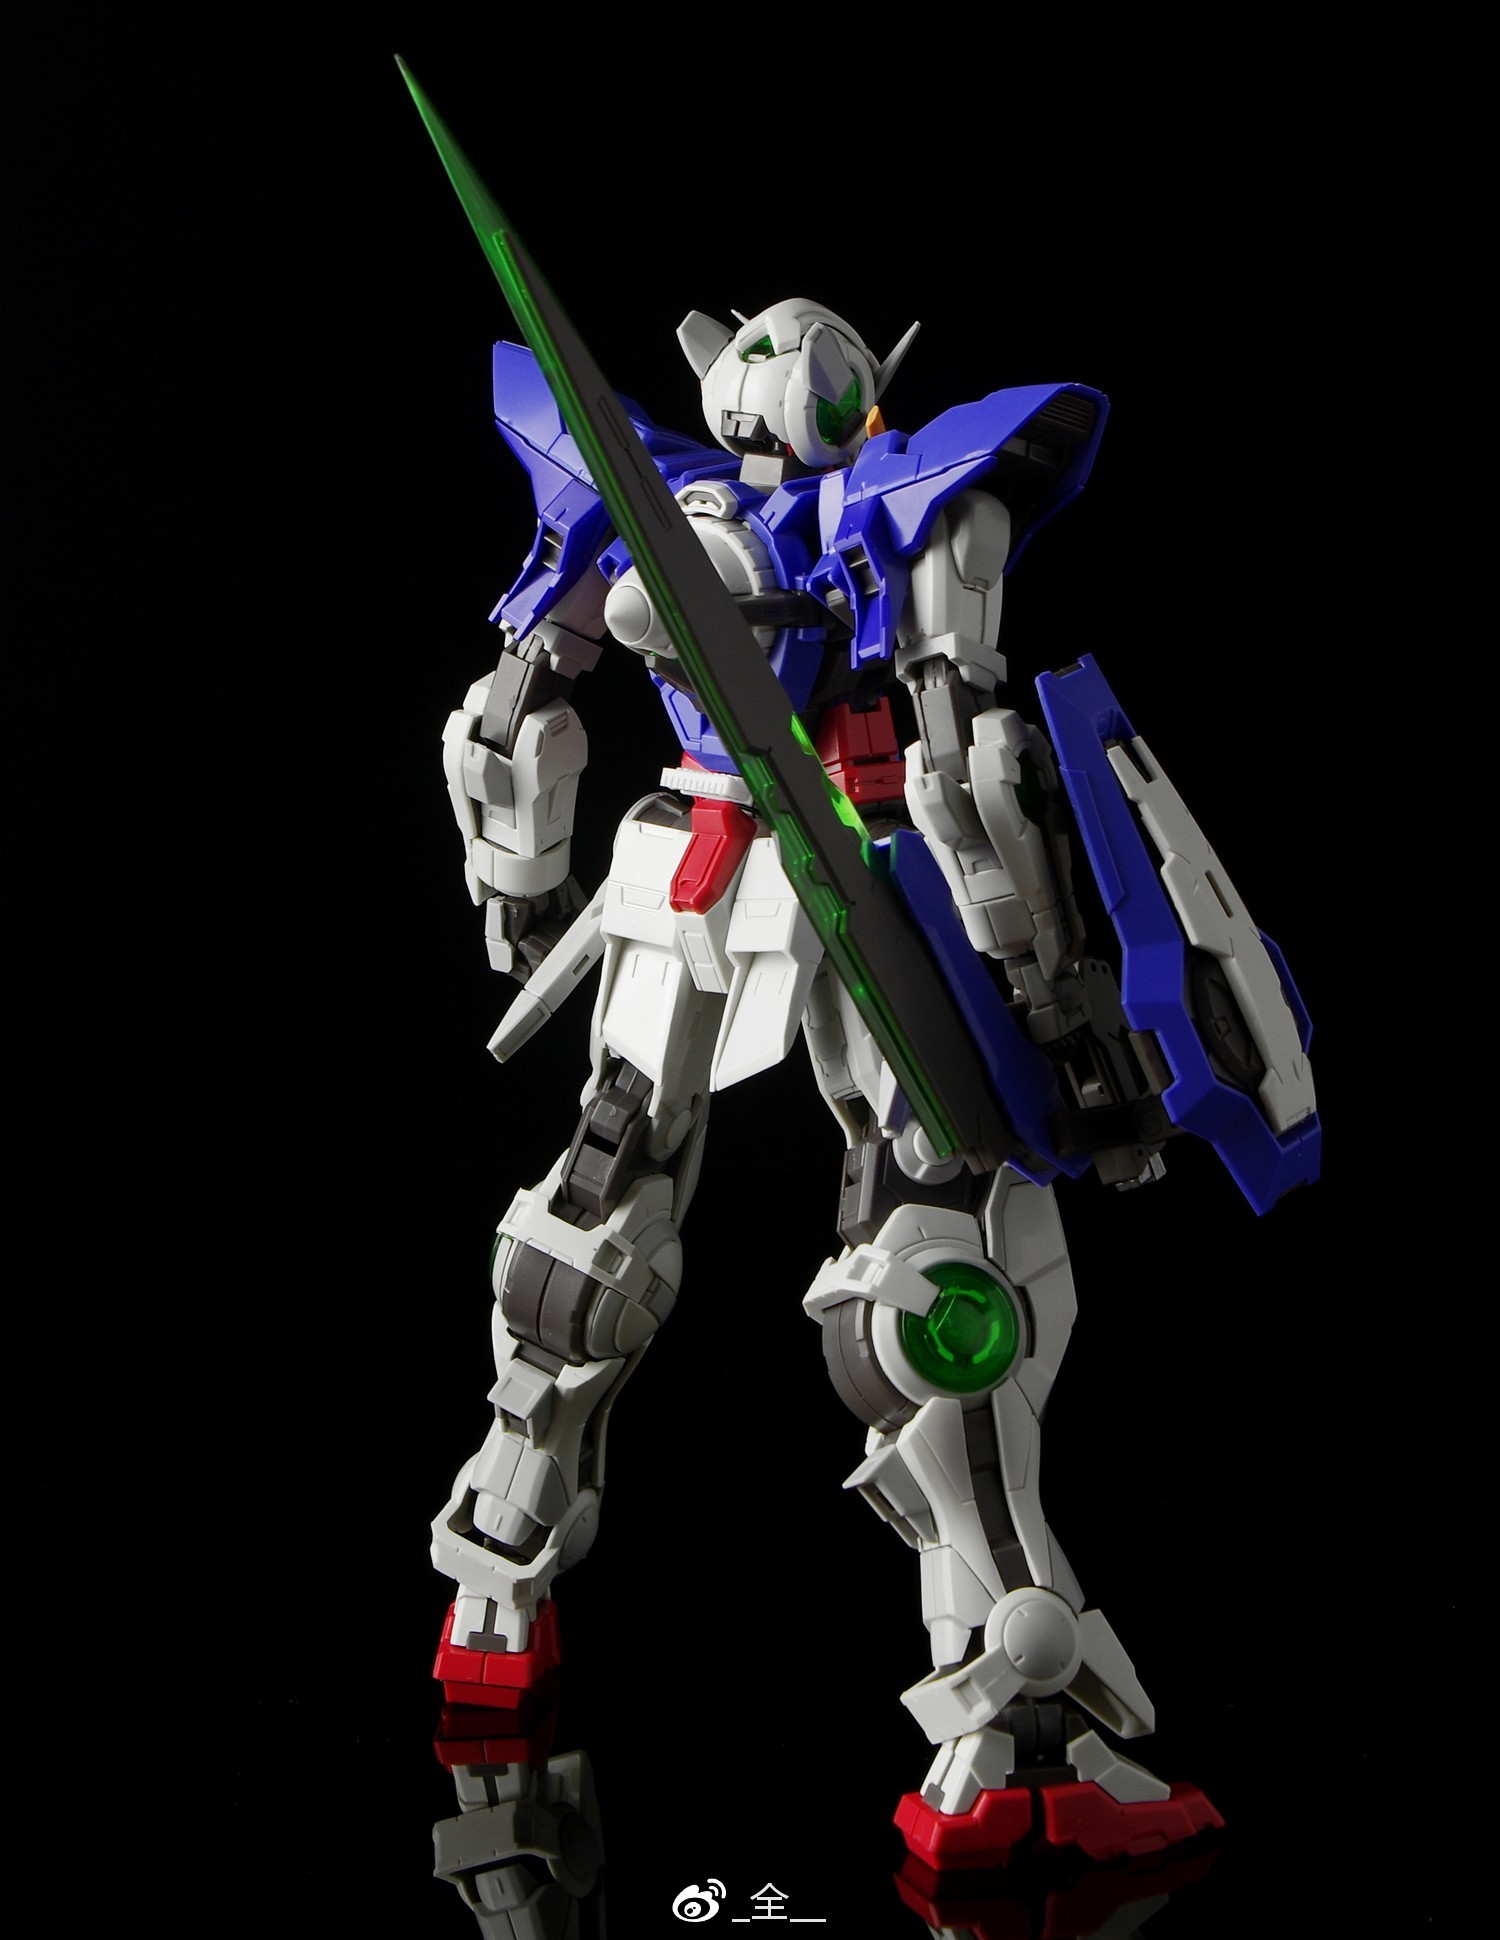 S269_mg_exia_led_hobby_star_inask_085.jpg